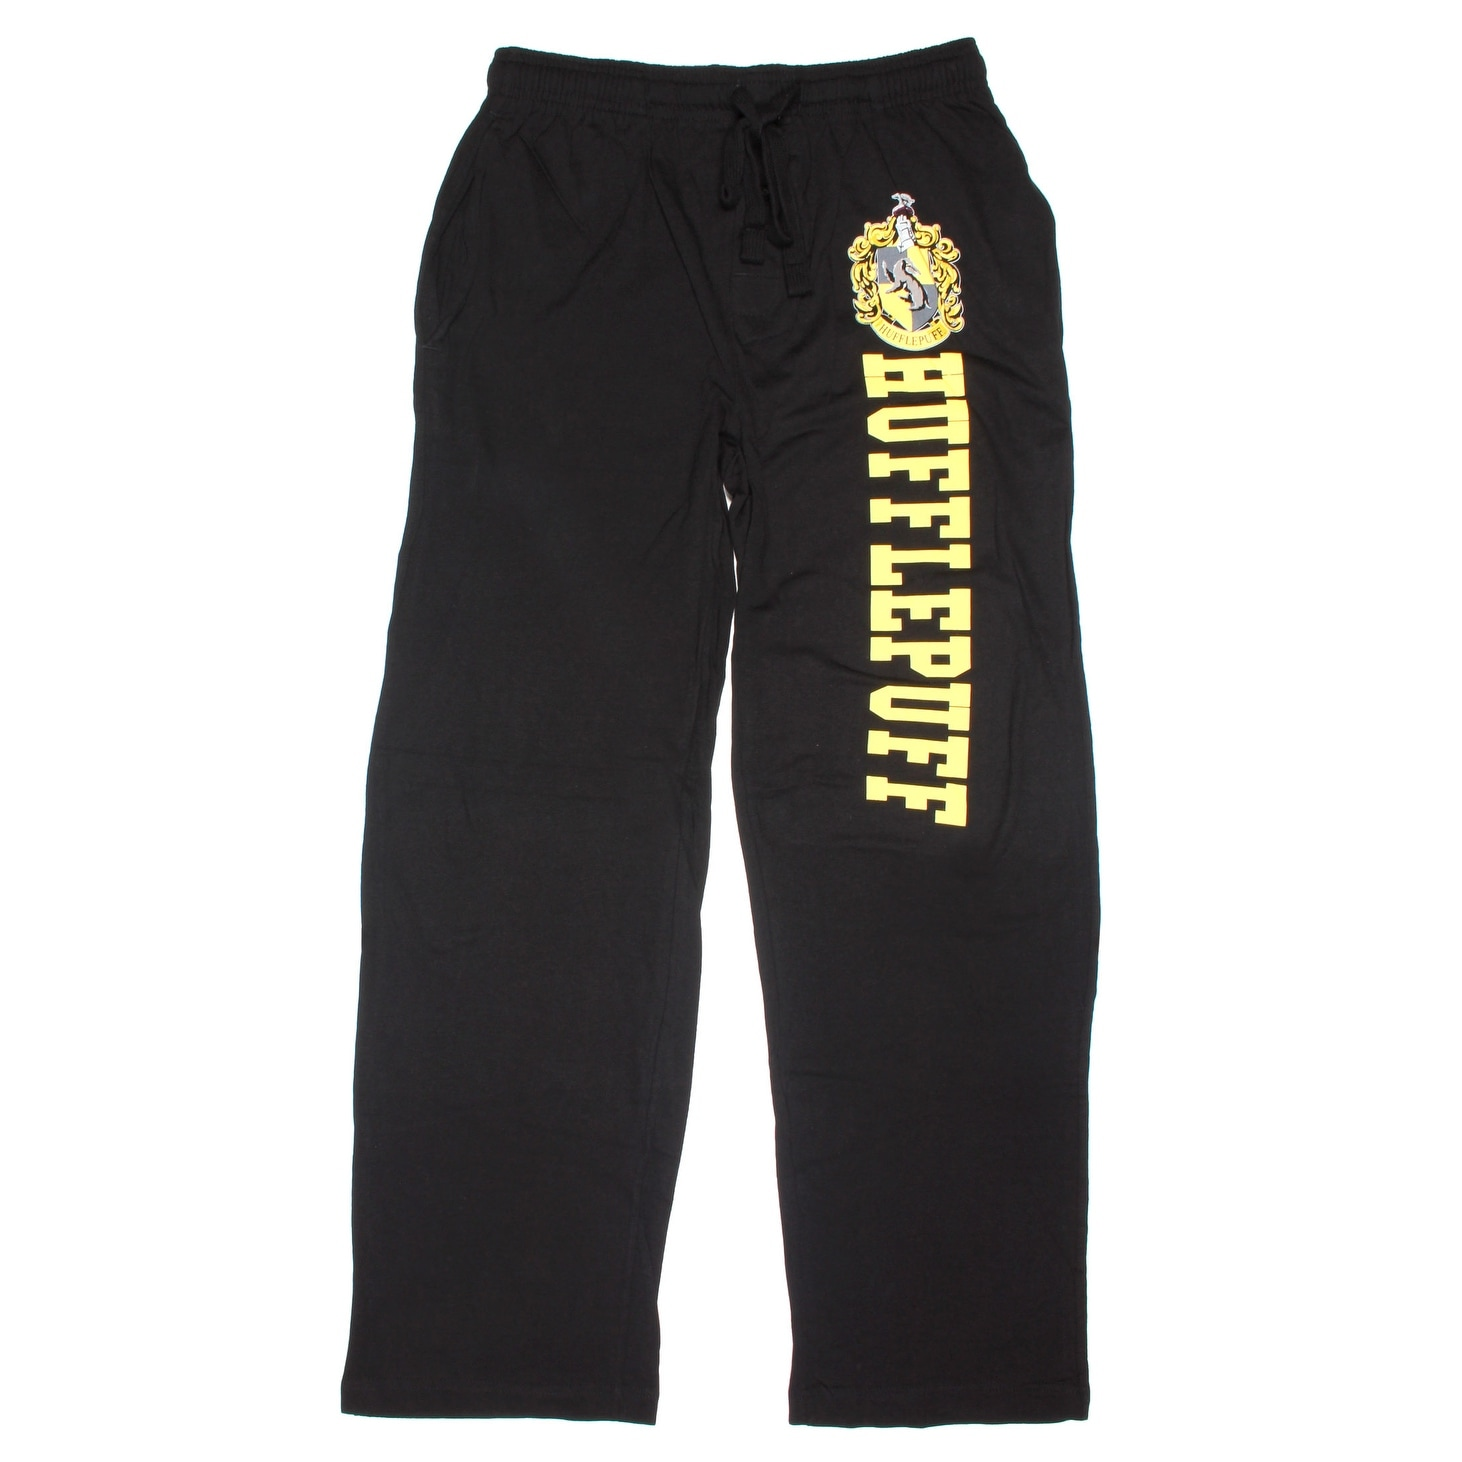 8518dc1d6465 Shop Harry Potter Hufflepuff Men s Pajama Pants - Free Shipping On Orders  Over  45 - Overstock - 22520328